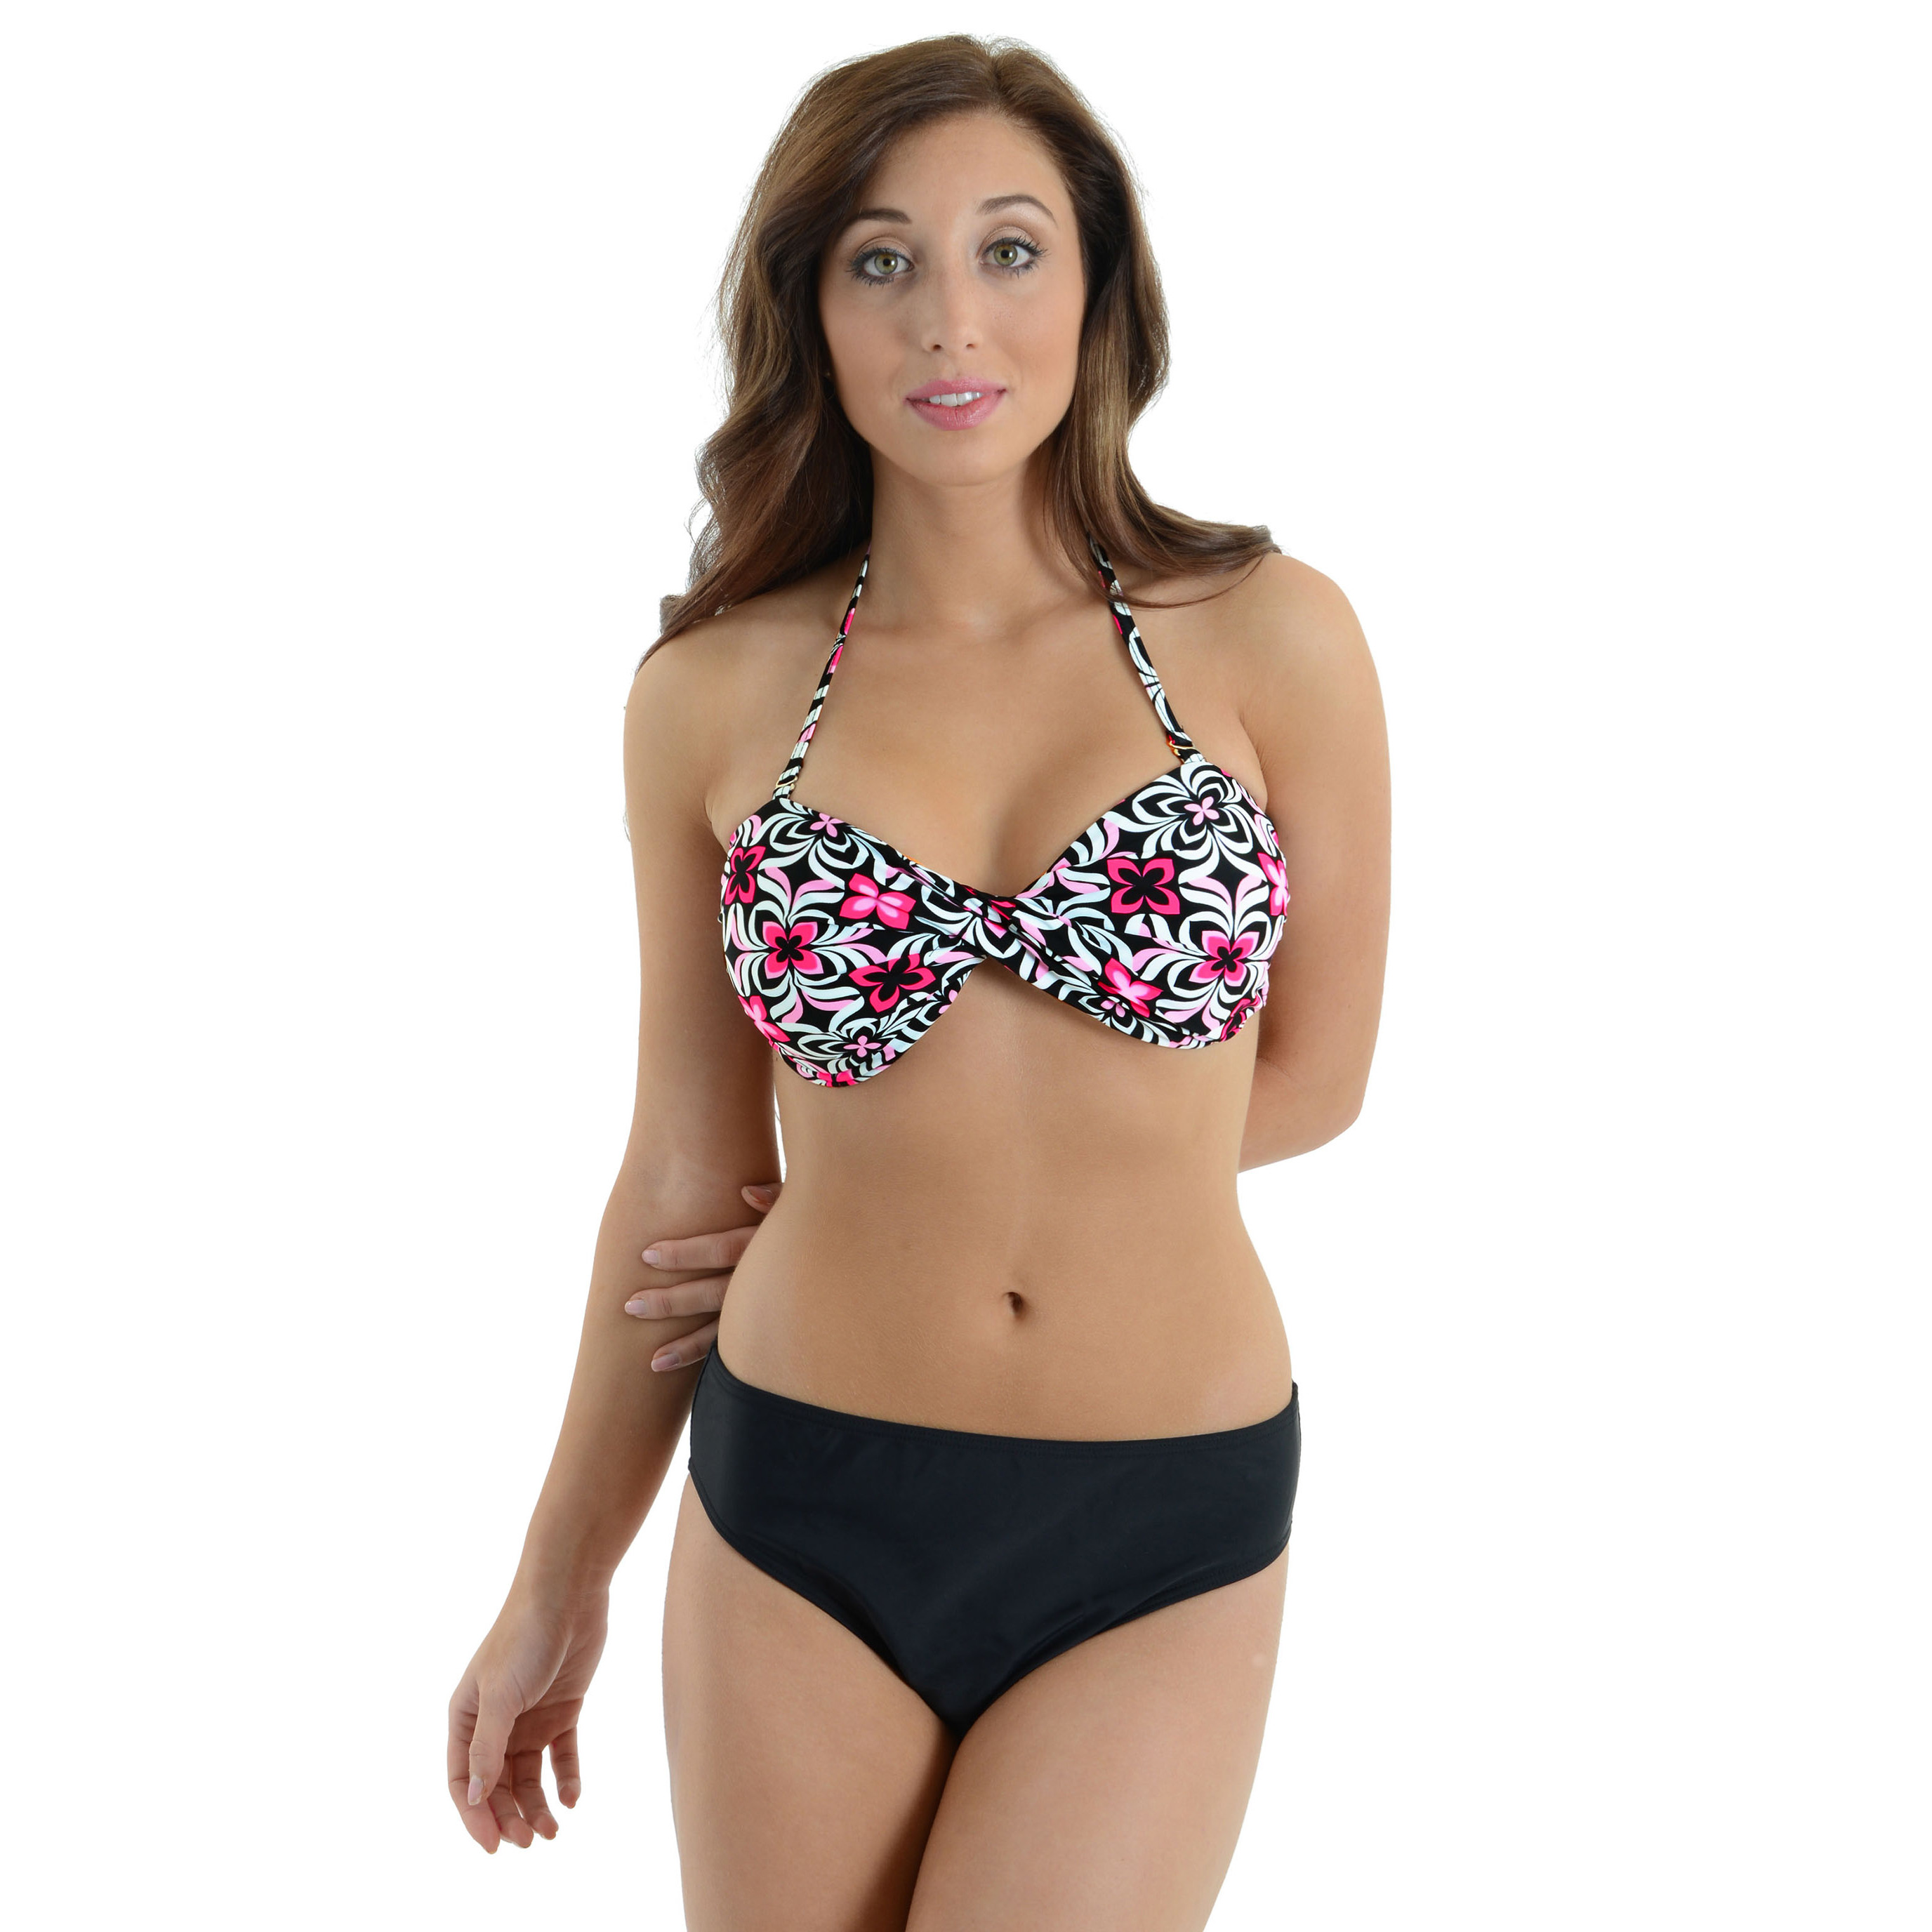 Caribbean Sand Women's Black and Pink Swimsuit 2 Piece Bandeau Bathing Suit